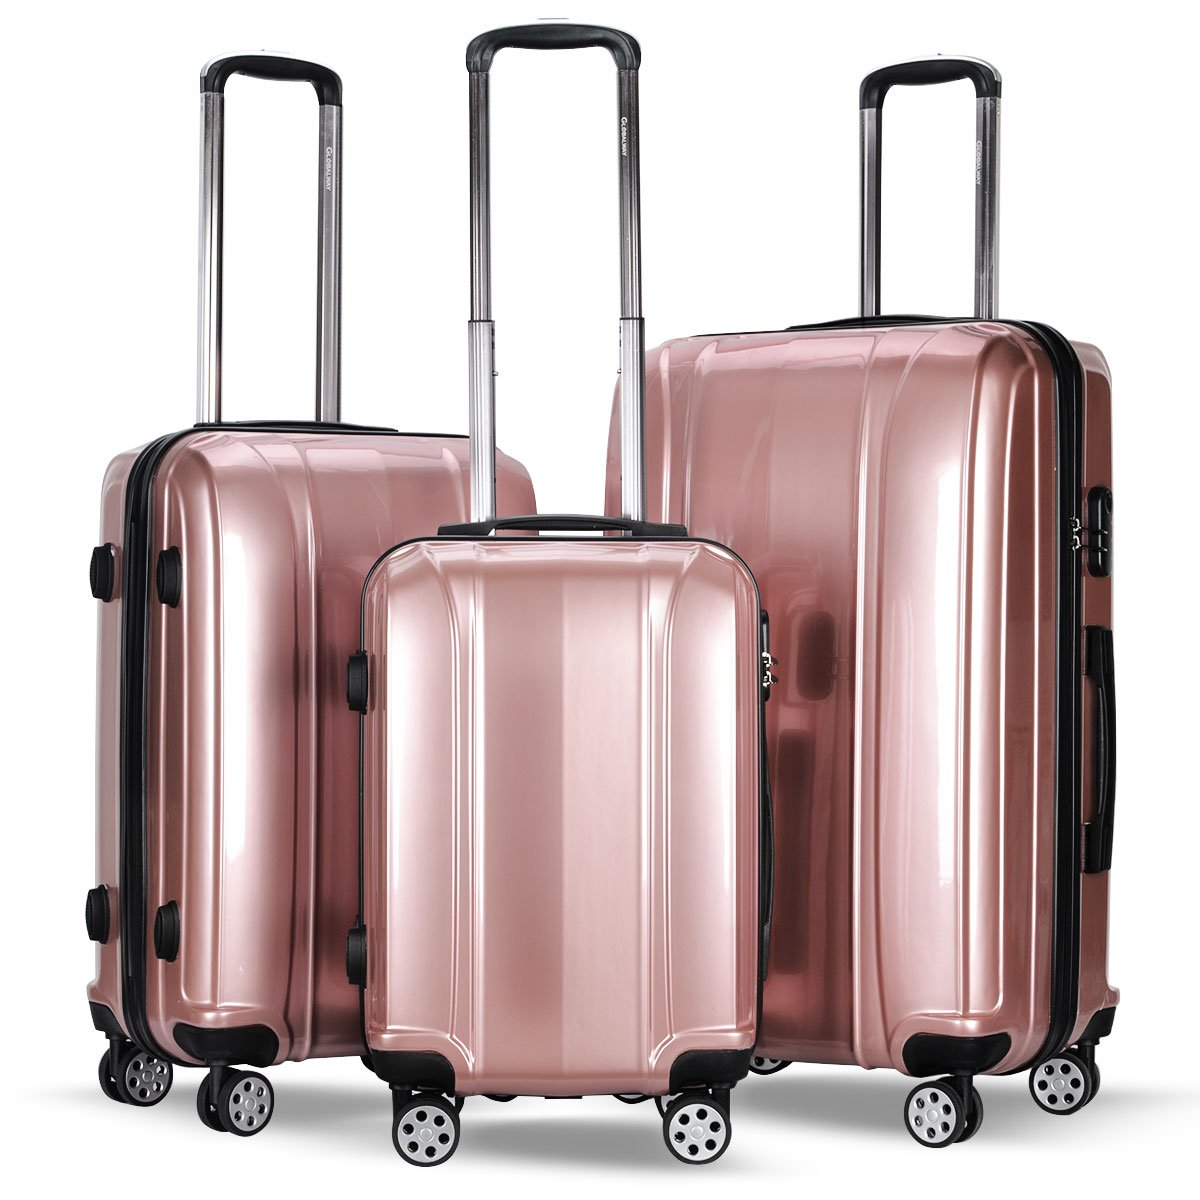 Amazon.com | Lightweight 3 Piece Luggage Sets, Durable Hardshell Spinner Suitcase with TSA Approved Locks | Luggage Sets